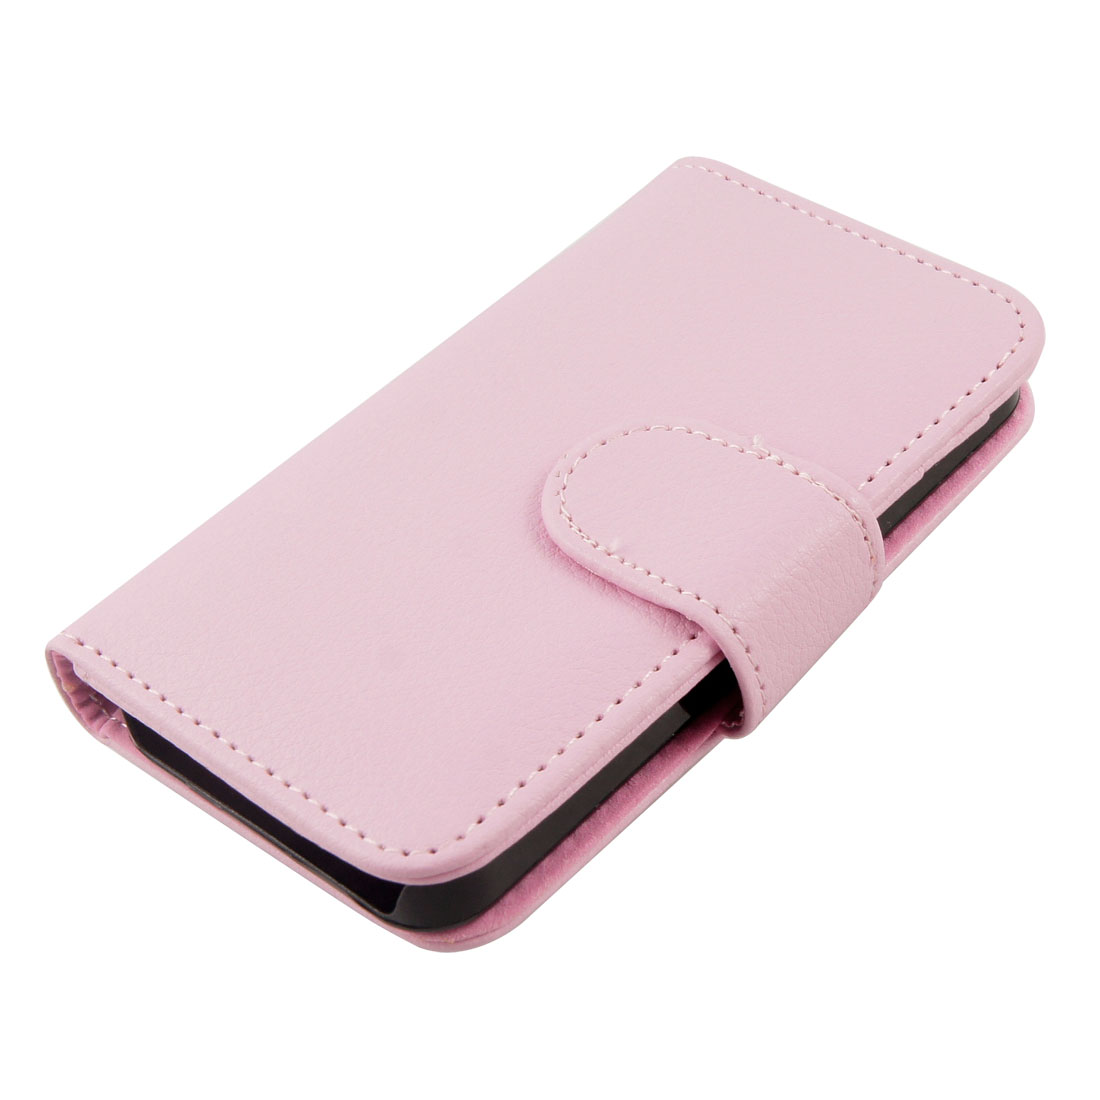 Magnetic Closure Pink Faux Leather Coated Cover for iPhone 4 4S